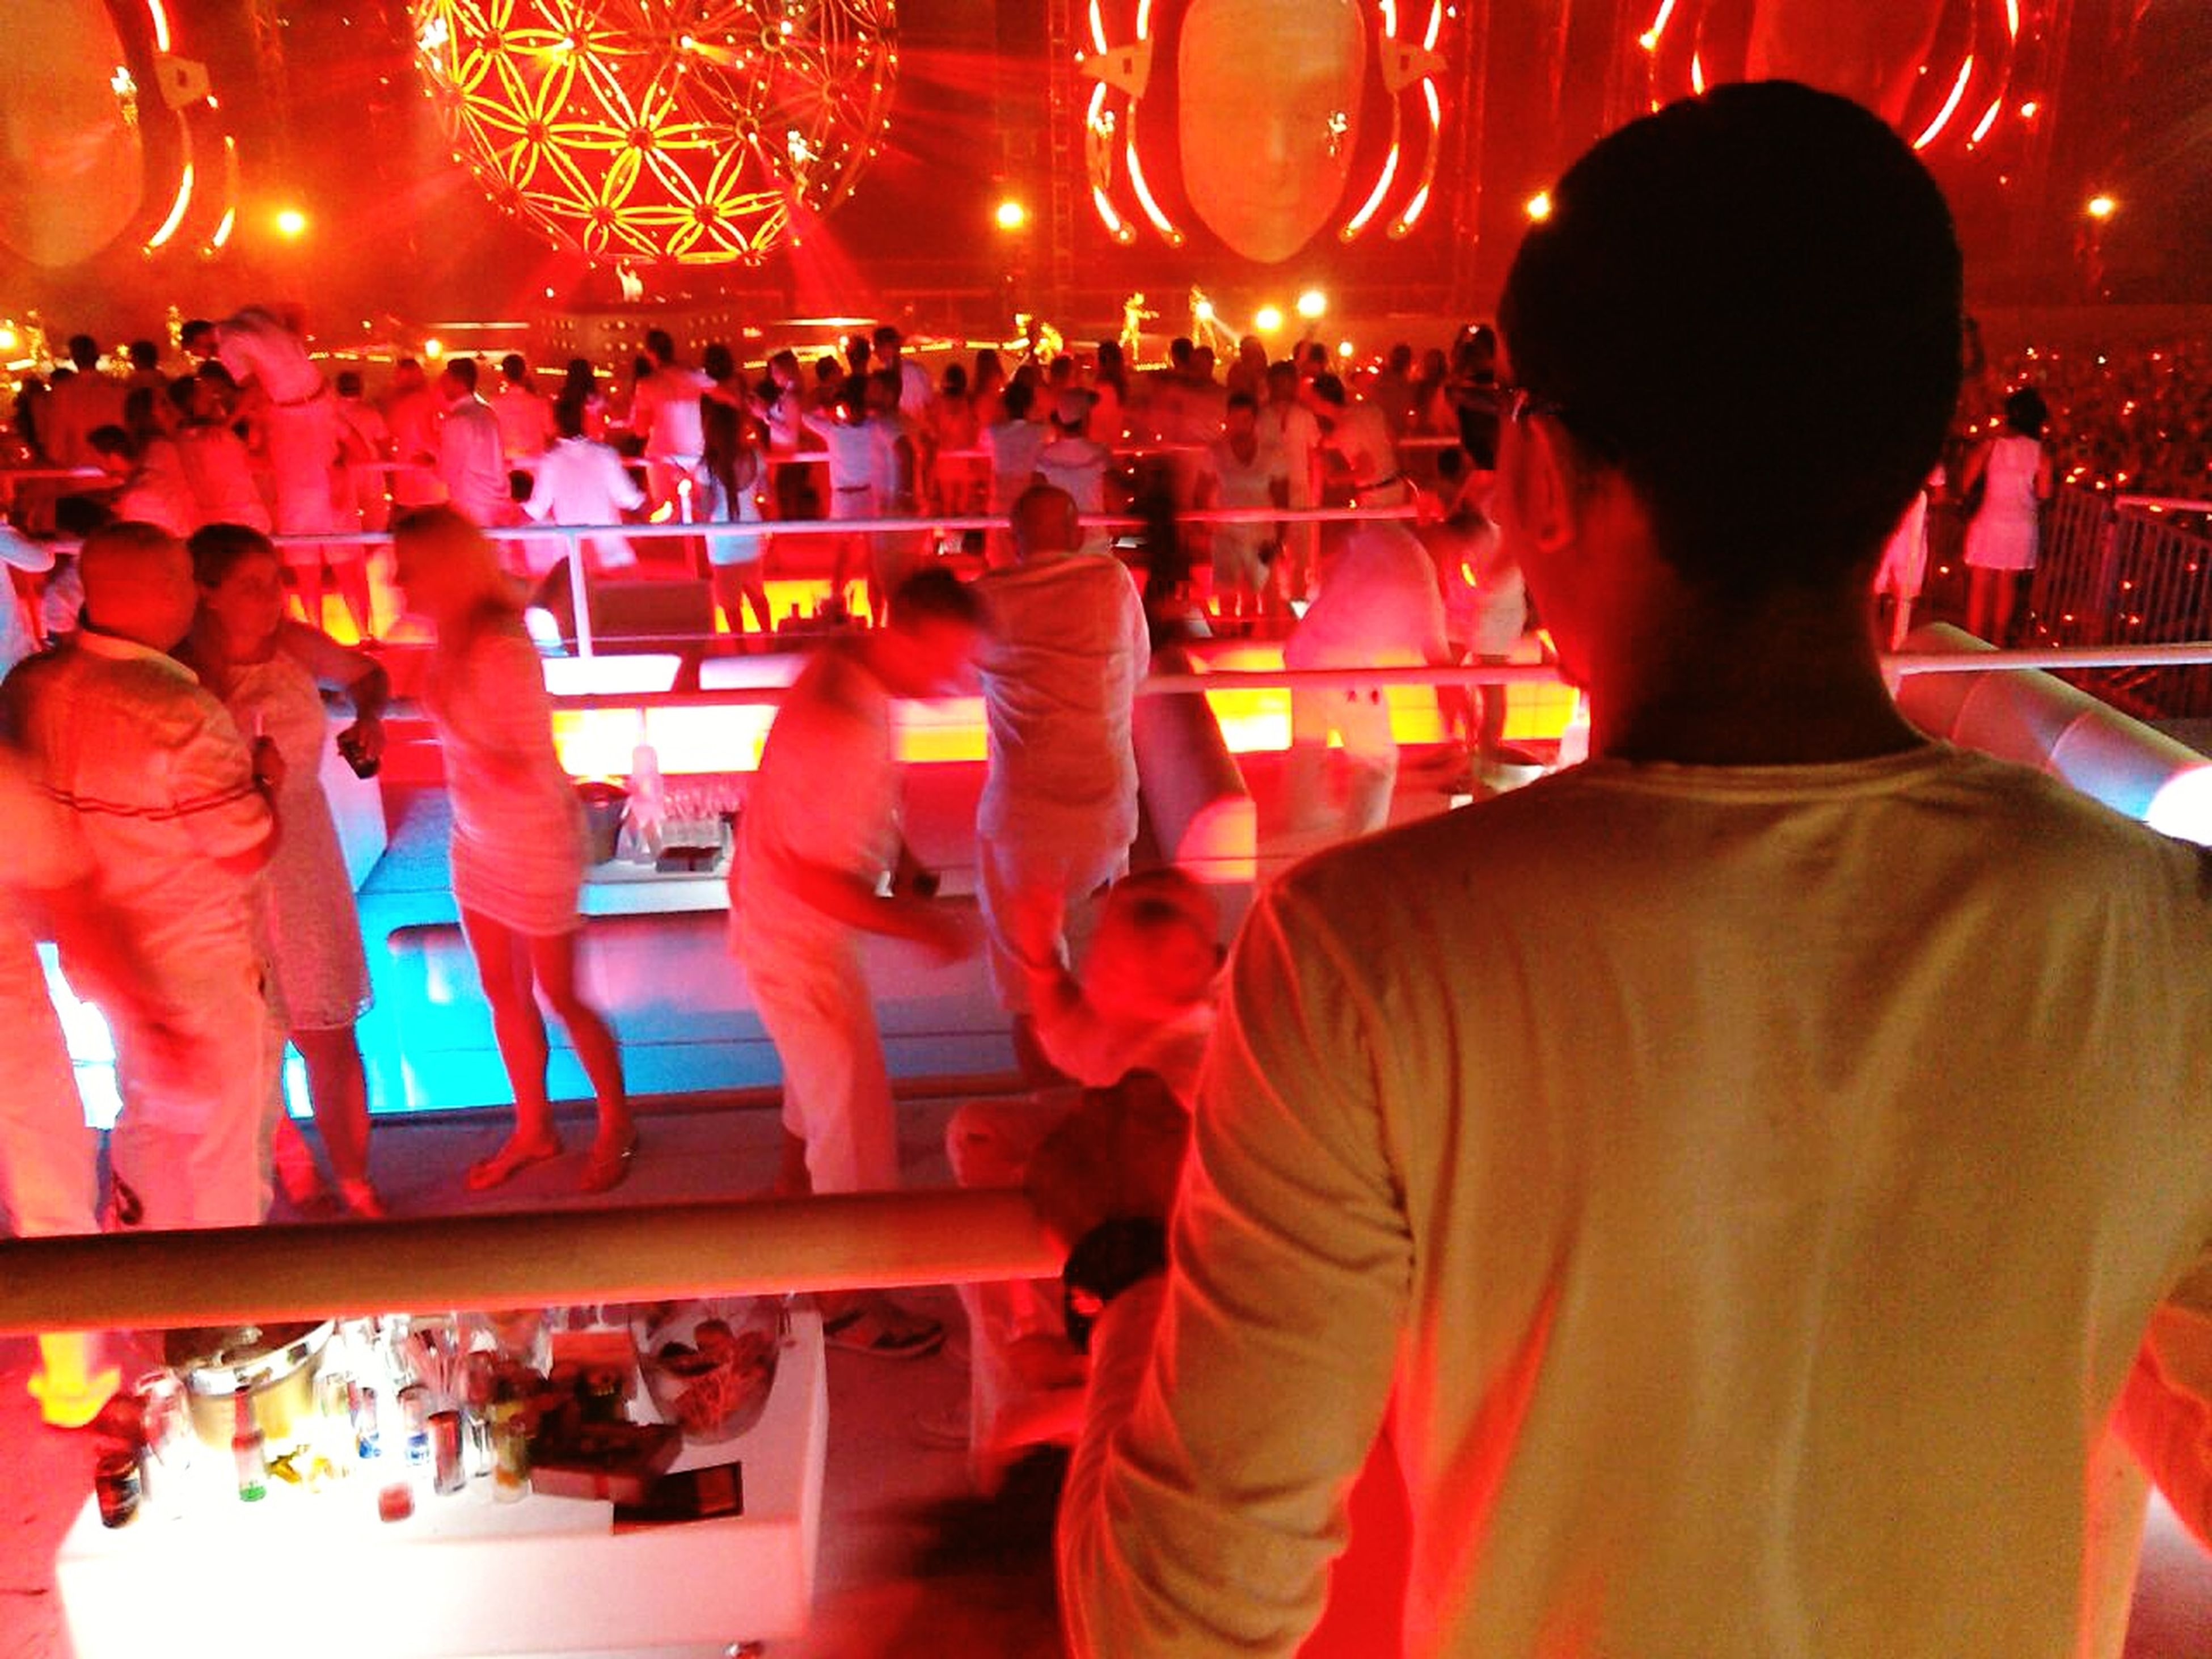 illuminated, large group of people, night, lifestyles, men, person, leisure activity, crowd, indoors, arts culture and entertainment, nightlife, lighting equipment, event, enjoyment, music, performance, stage - performance space, celebration